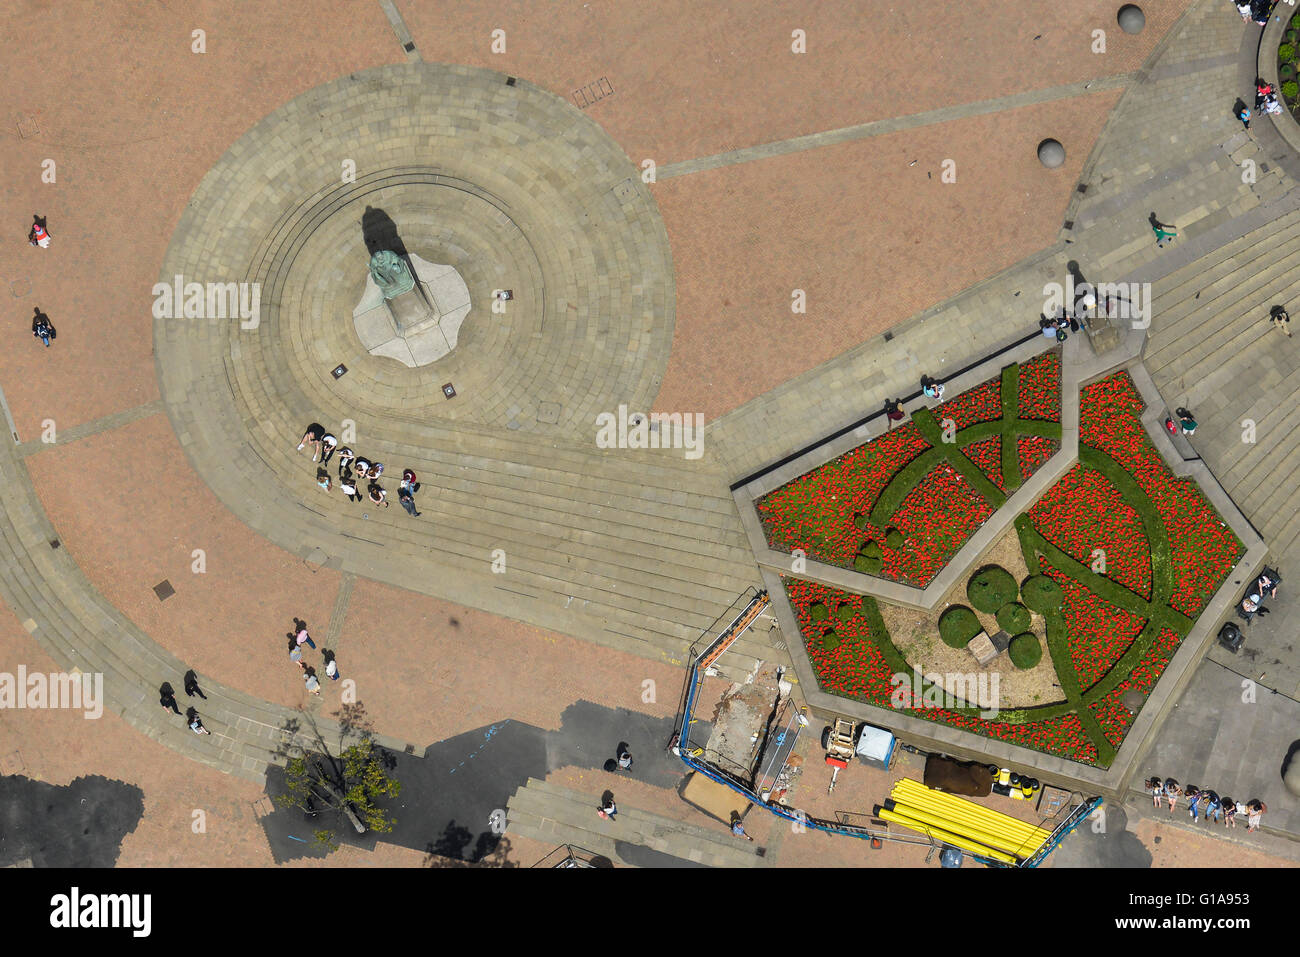 An aerial view of Victoria Square in central Birmingham, West Midlands - Stock Image